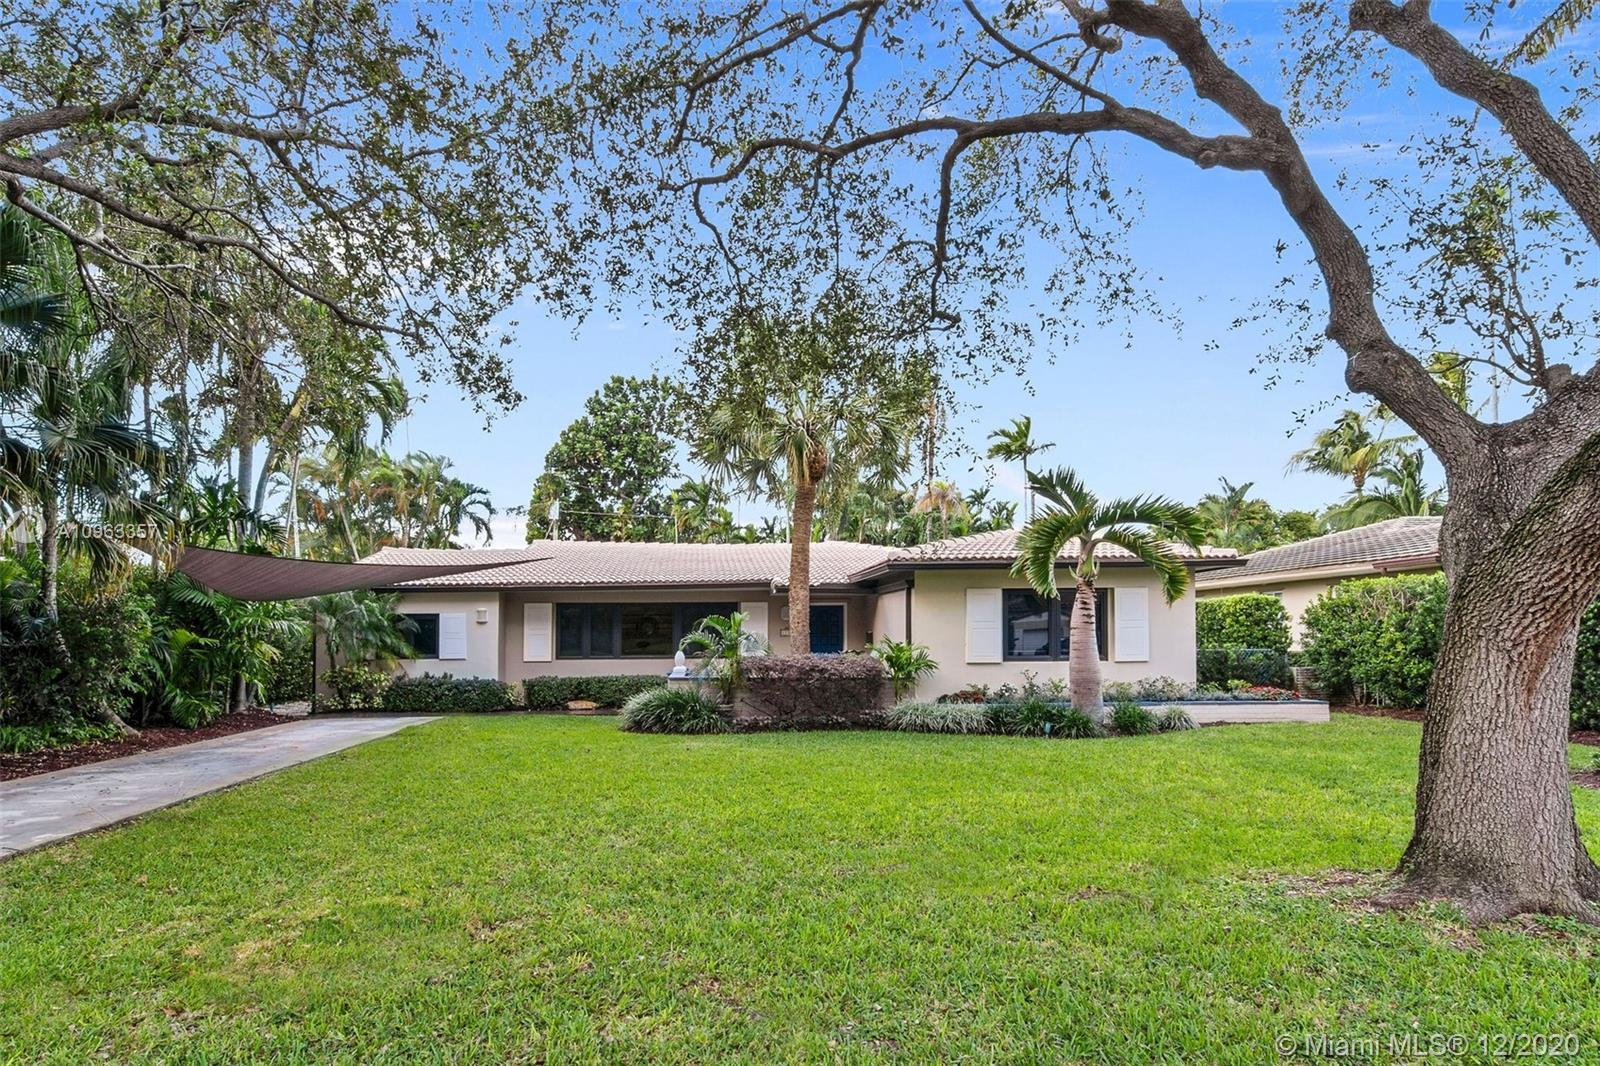 Beautiful spacious pool home in East Miami Shores. This 4-bedroom, 3 bath home has been impeccably m